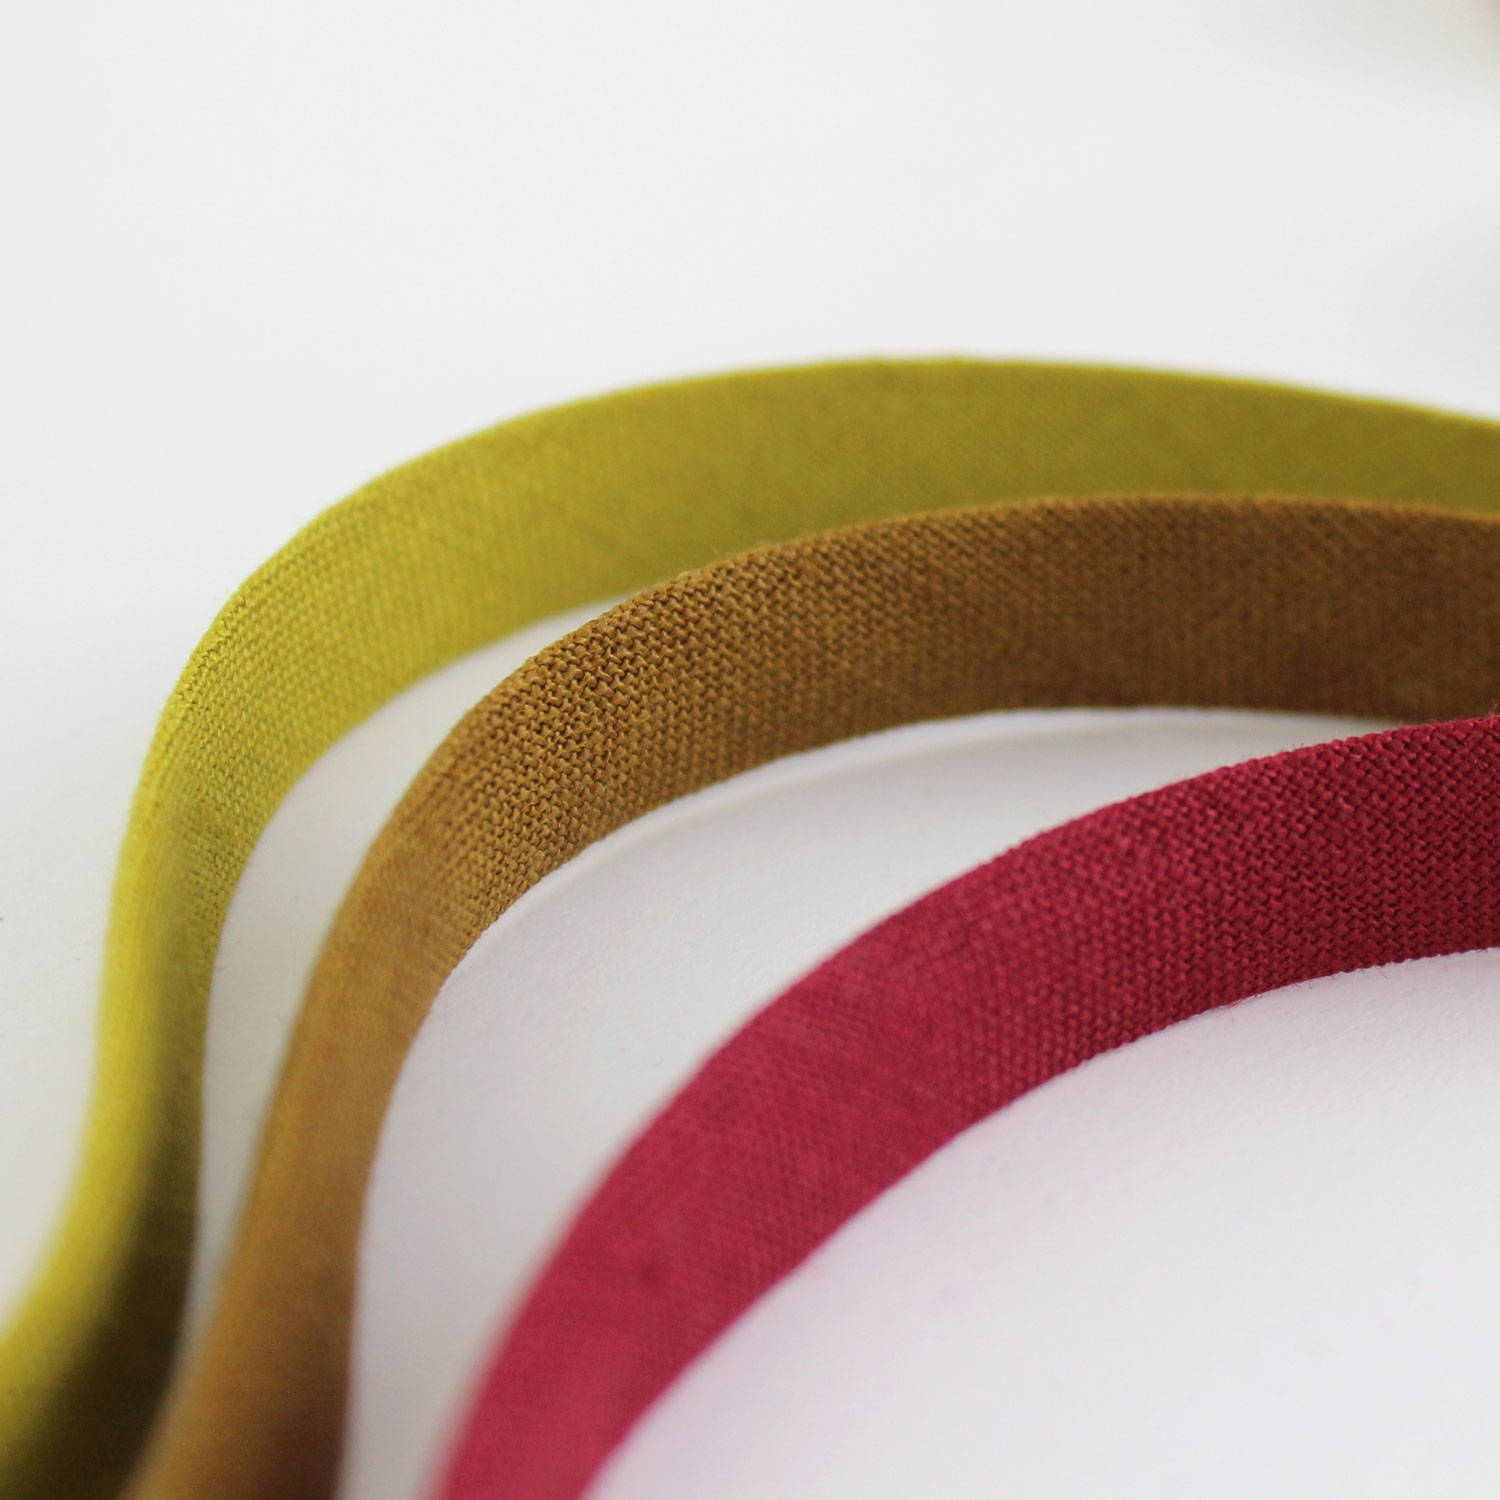 Bias Binding - The Fabric Store Online